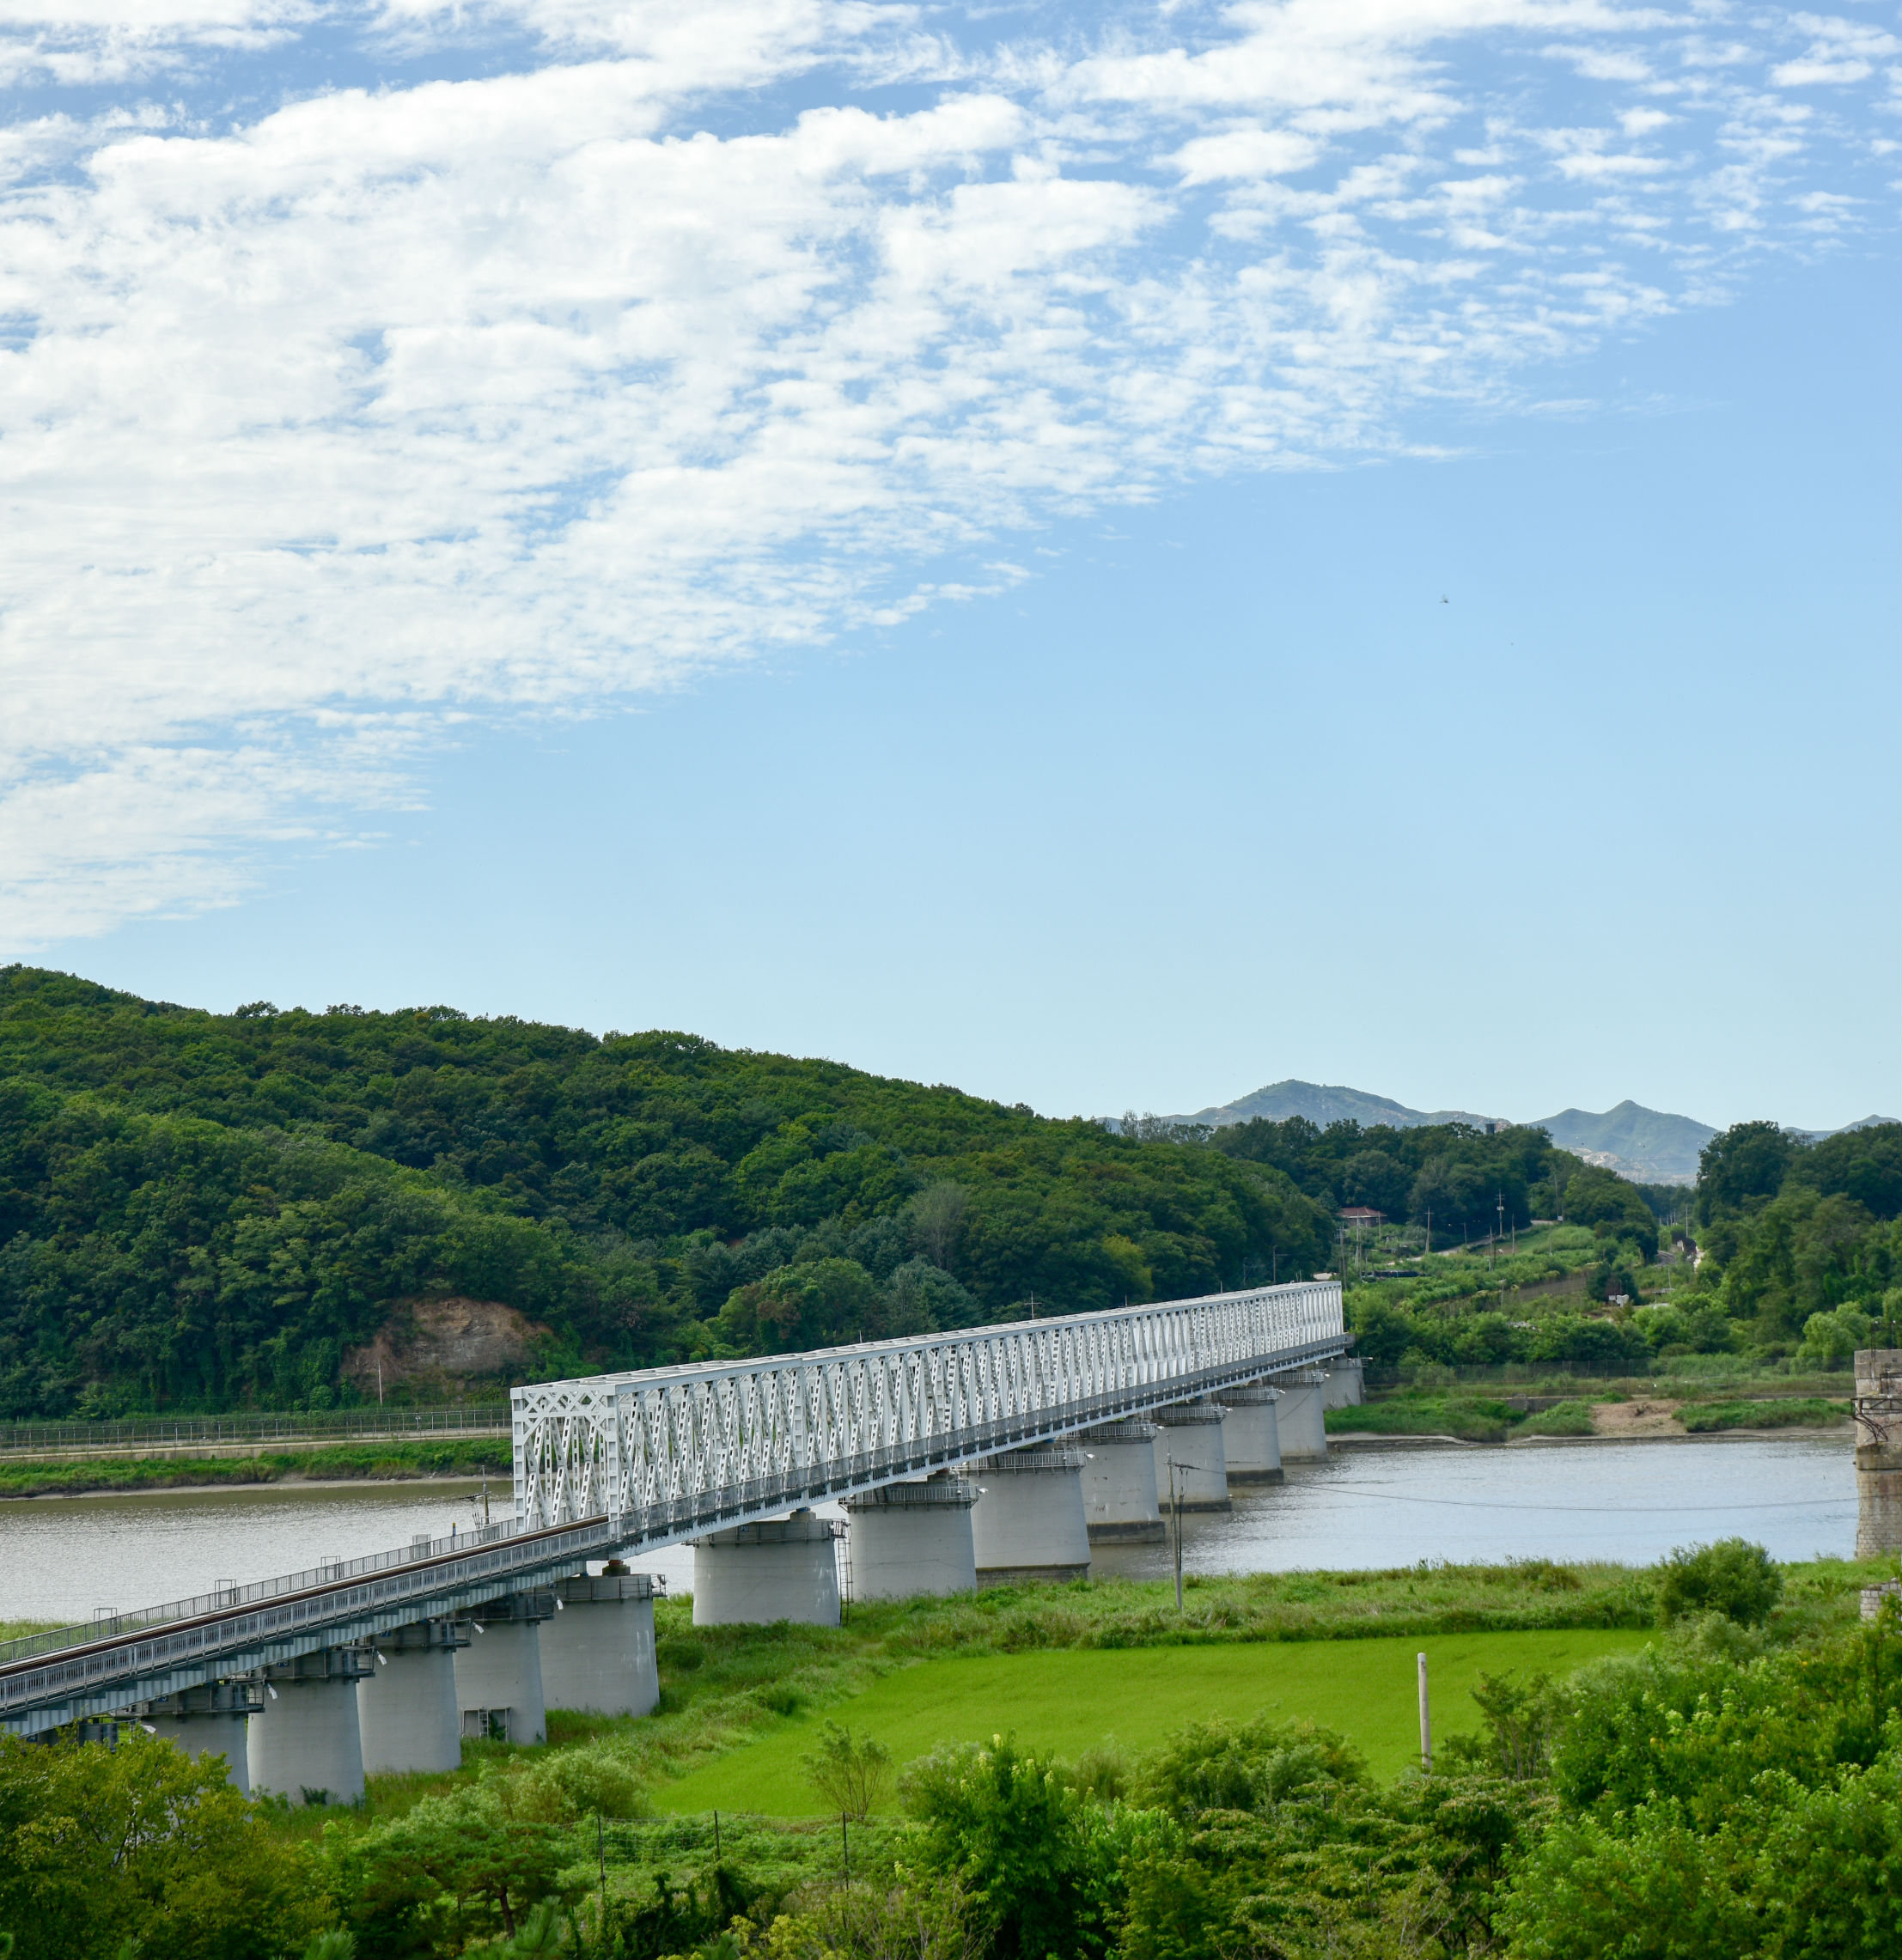 The Bridge of Freedom in Paju, Korea got its name when 13,000 war prisoners shouted